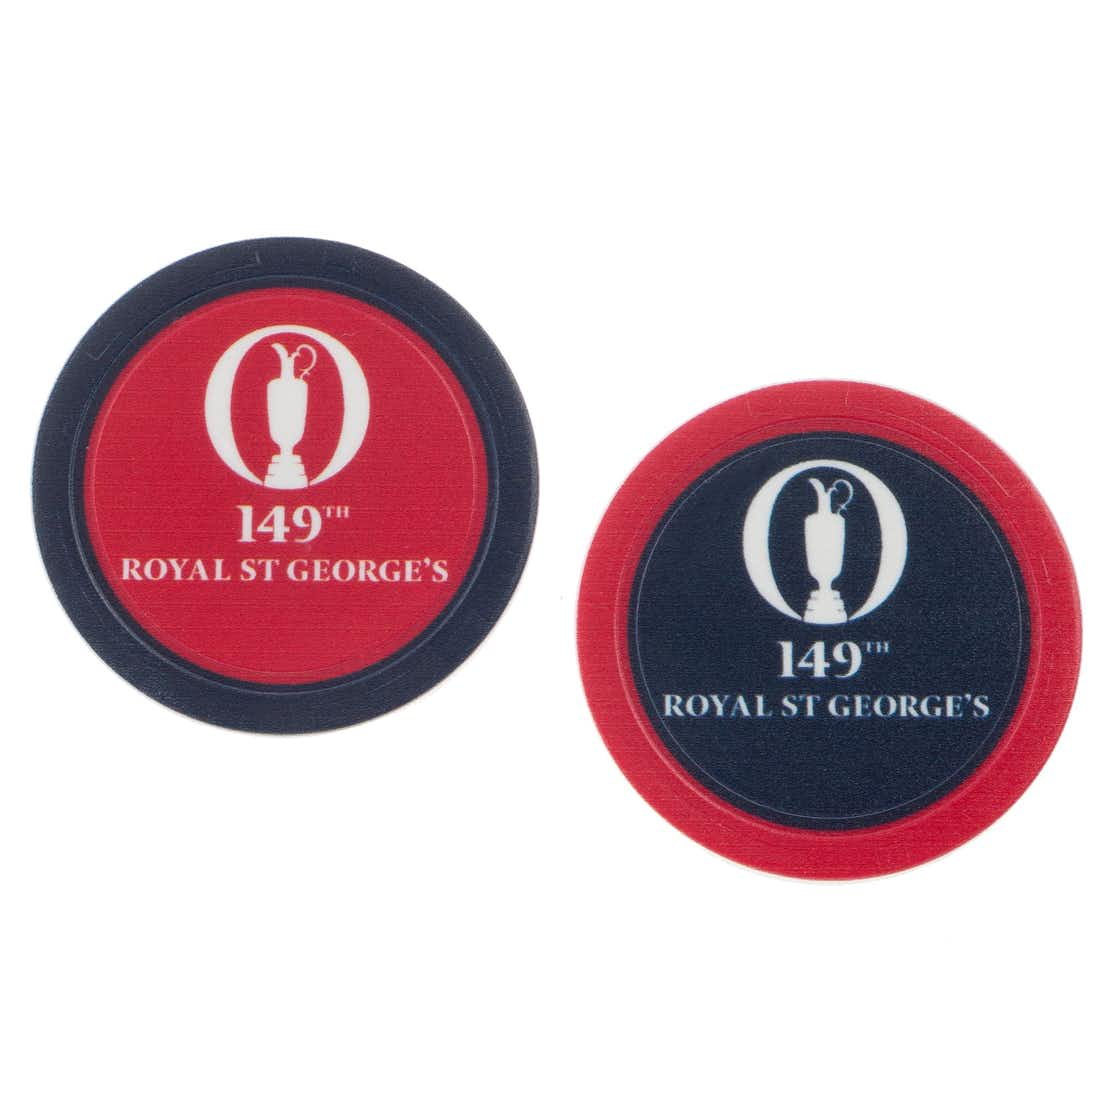 149th Royal St George's Collector's Coin - Blue and Red